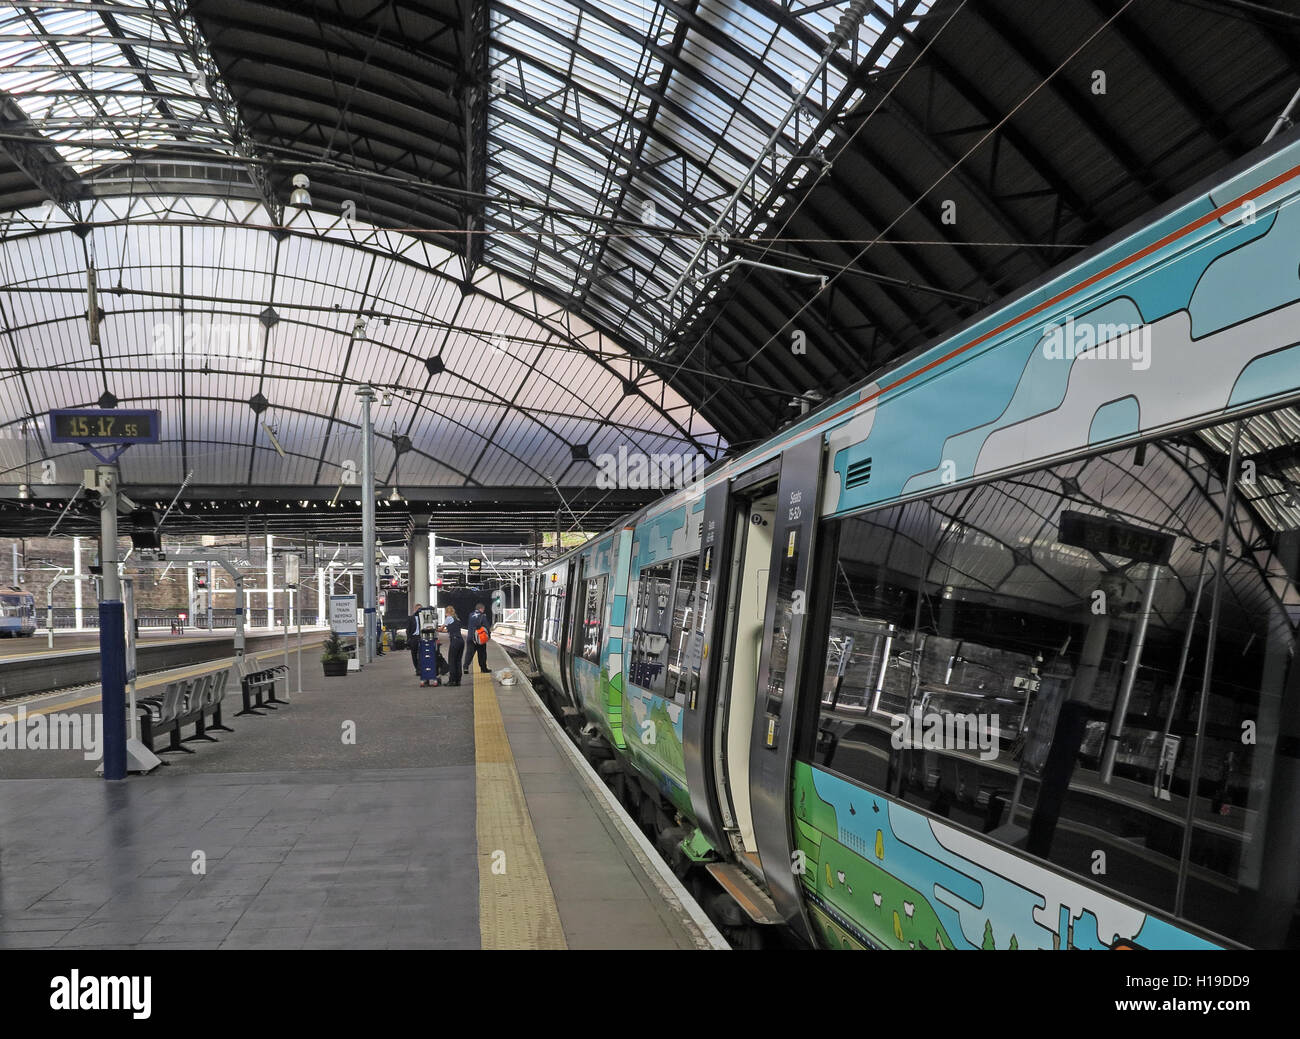 Platforms at Glasgow Queen St Railway Station - Stock Image